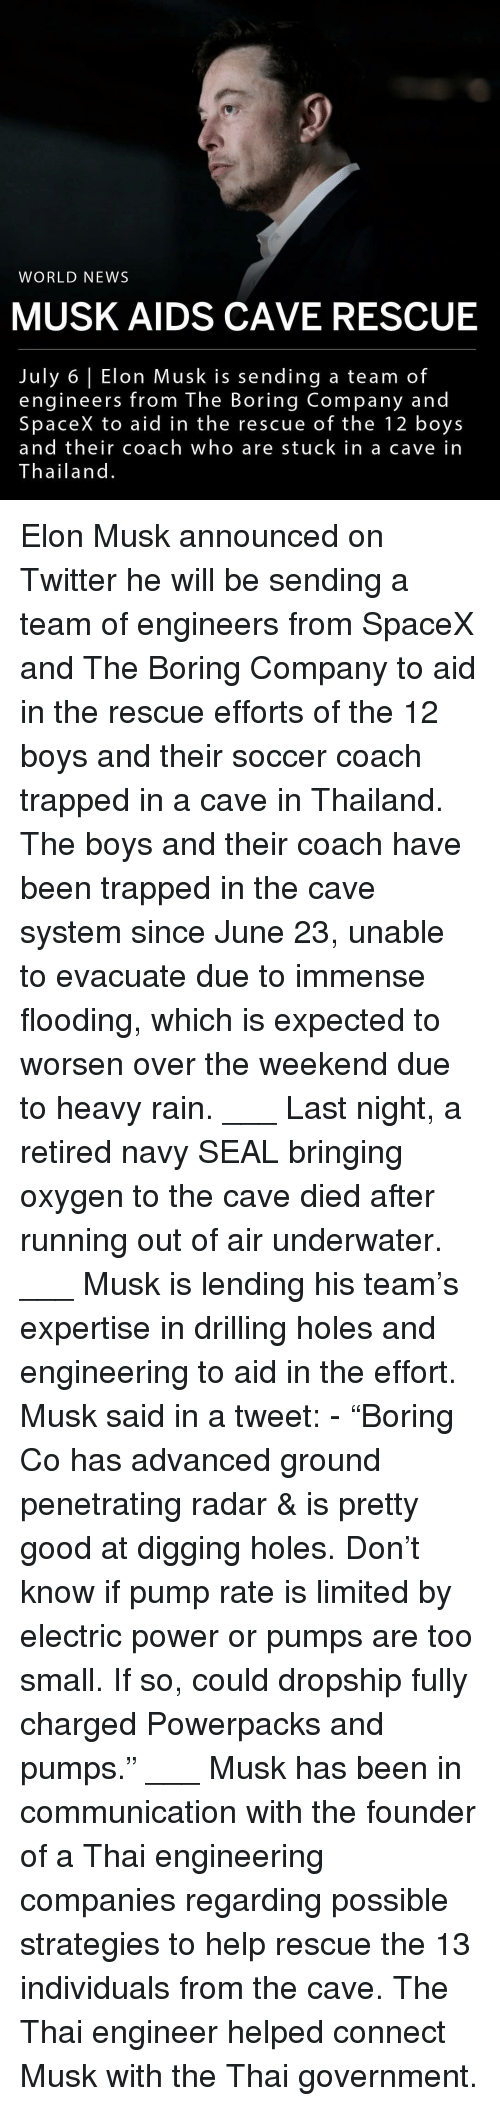 """drilling: WORLD NEWS  MUSK AIDS CAVE RESCUE  July 6 Elon Musk is sending a team of  engineers from The Boring Company and  SpaceX to aid in the rescue of the 12 boys  and their coach who are stuck in a cave in  Thailand. Elon Musk announced on Twitter he will be sending a team of engineers from SpaceX and The Boring Company to aid in the rescue efforts of the 12 boys and their soccer coach trapped in a cave in Thailand. The boys and their coach have been trapped in the cave system since June 23, unable to evacuate due to immense flooding, which is expected to worsen over the weekend due to heavy rain. ___ Last night, a retired navy SEAL bringing oxygen to the cave died after running out of air underwater. ___ Musk is lending his team's expertise in drilling holes and engineering to aid in the effort. Musk said in a tweet: - """"Boring Co has advanced ground penetrating radar & is pretty good at digging holes. Don't know if pump rate is limited by electric power or pumps are too small. If so, could dropship fully charged Powerpacks and pumps."""" ___ Musk has been in communication with the founder of a Thai engineering companies regarding possible strategies to help rescue the 13 individuals from the cave. The Thai engineer helped connect Musk with the Thai government."""